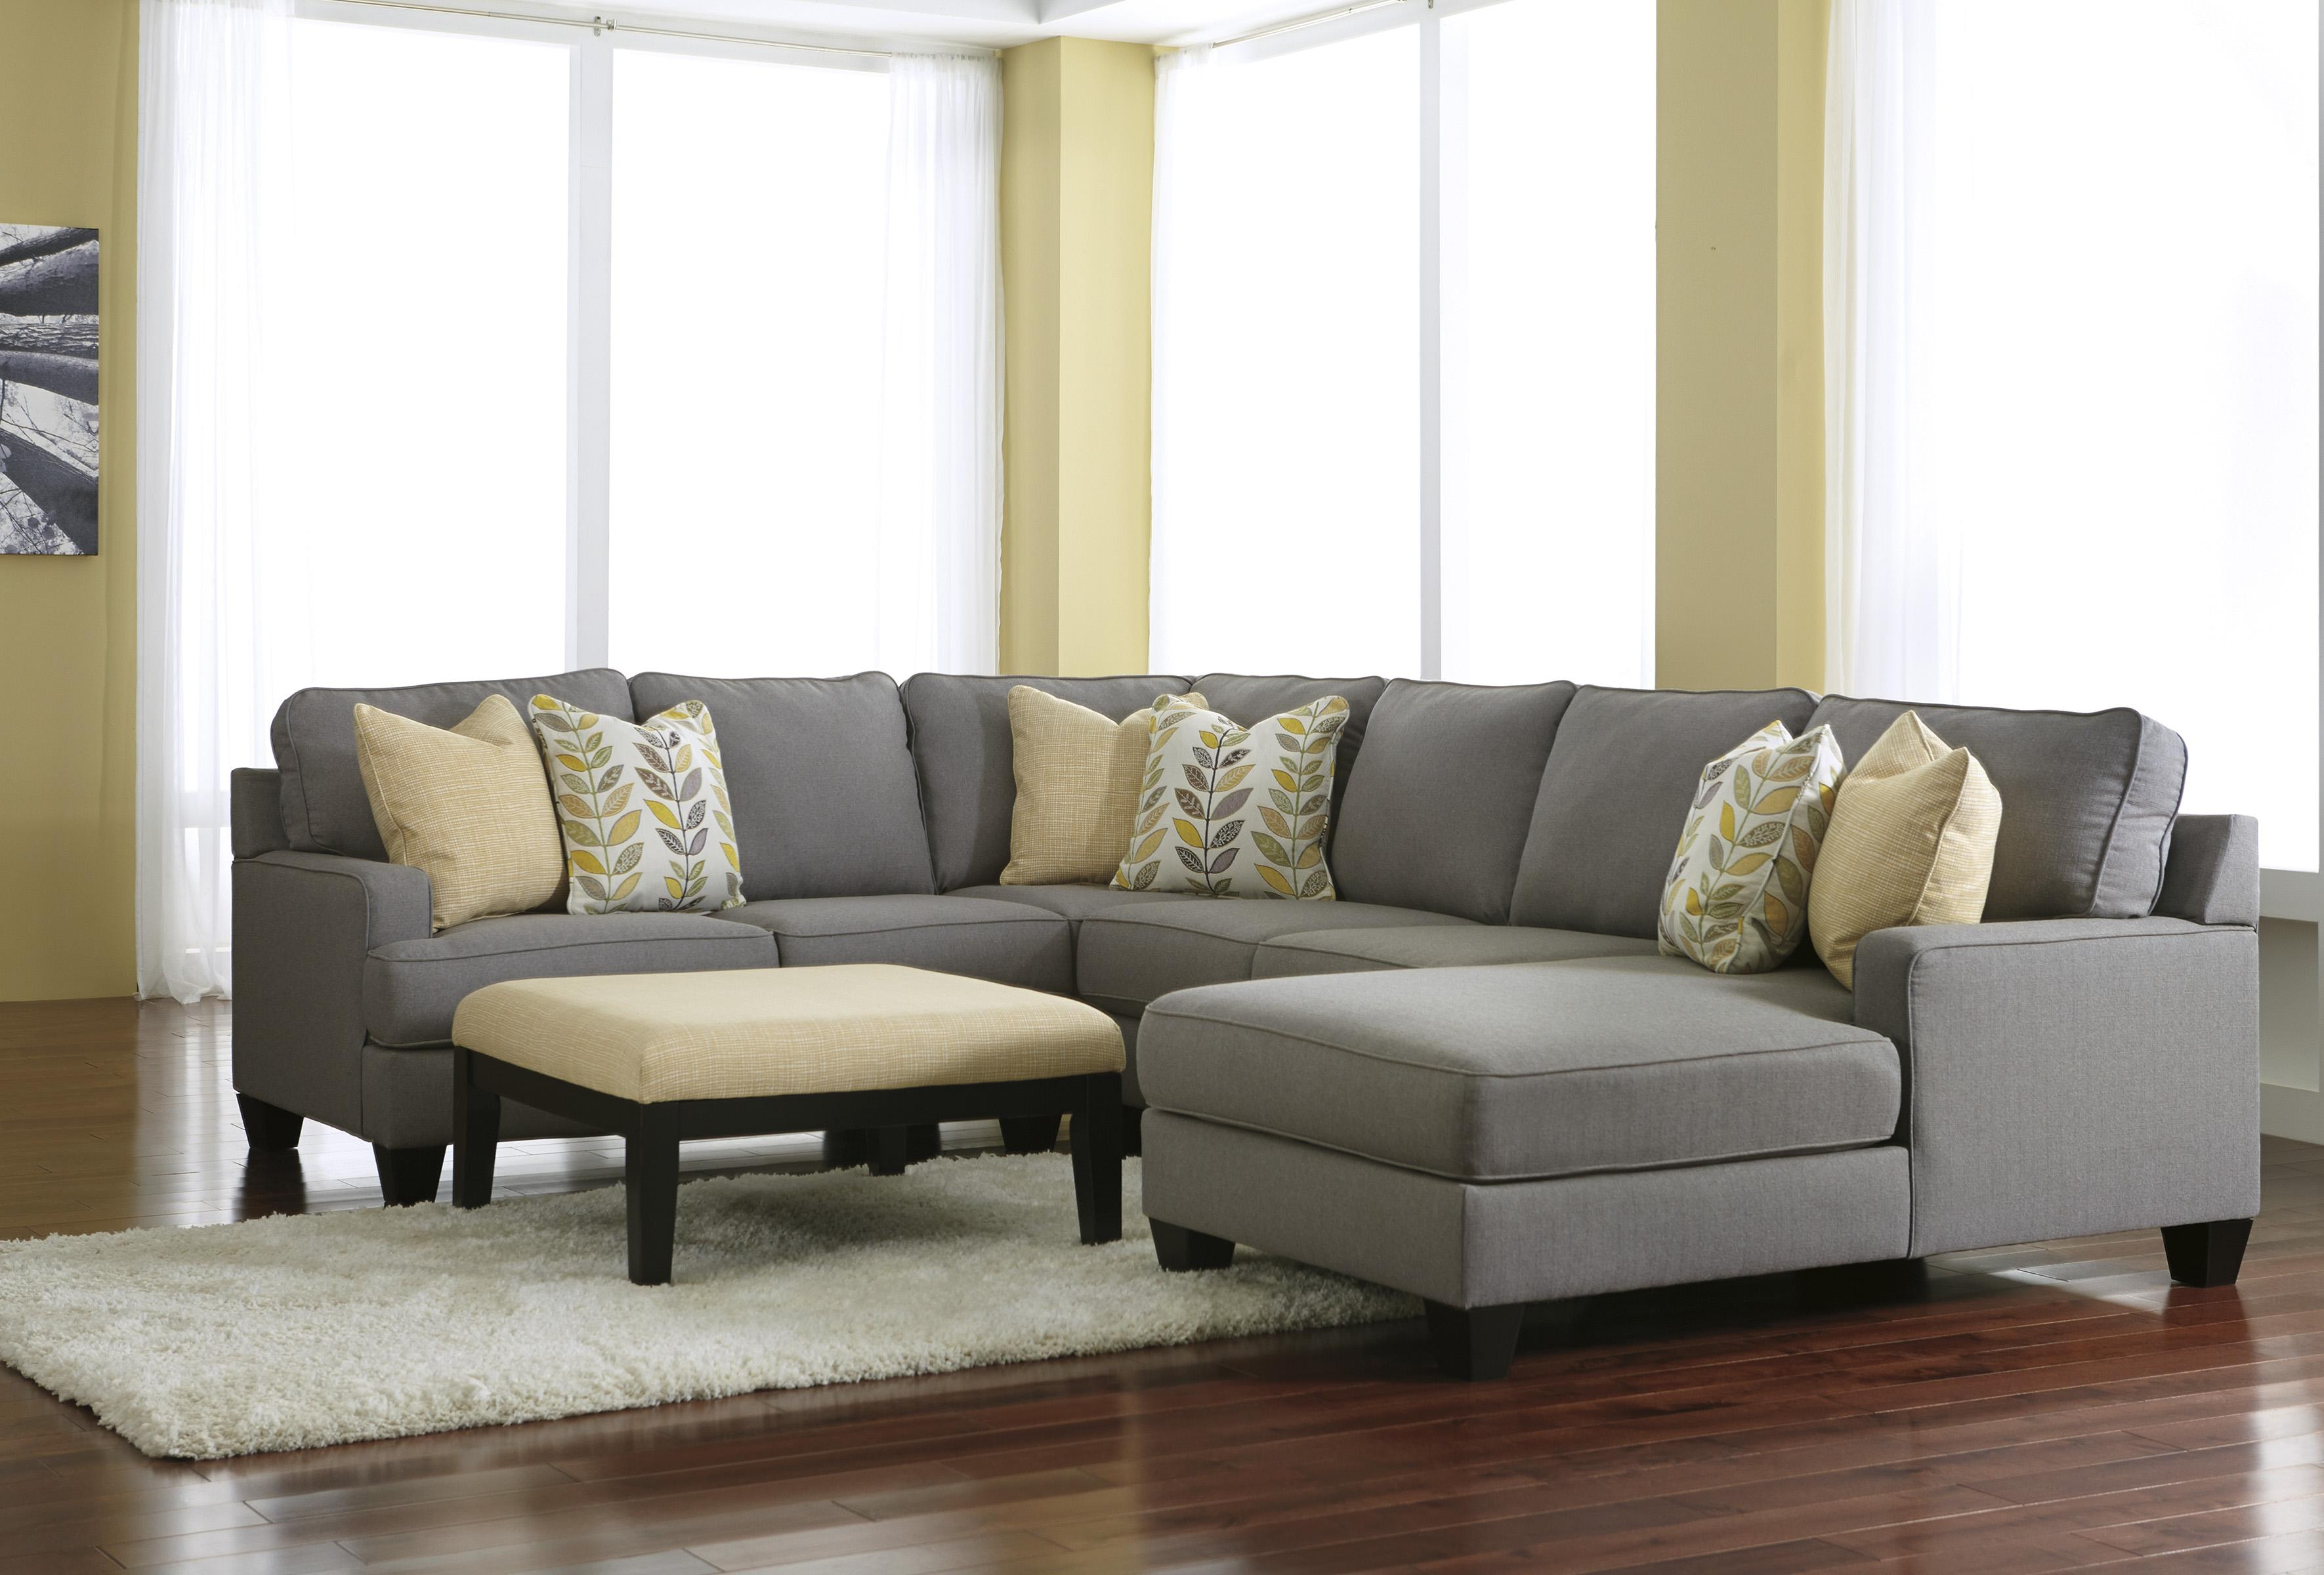 Signature Design By Ashley Chamberly   Alloy Modern 4 Piece Sectional Sofa  With Right Chaise U0026 Reversible Seat Cushions | Godby Home Furnishings |  Sectional ...